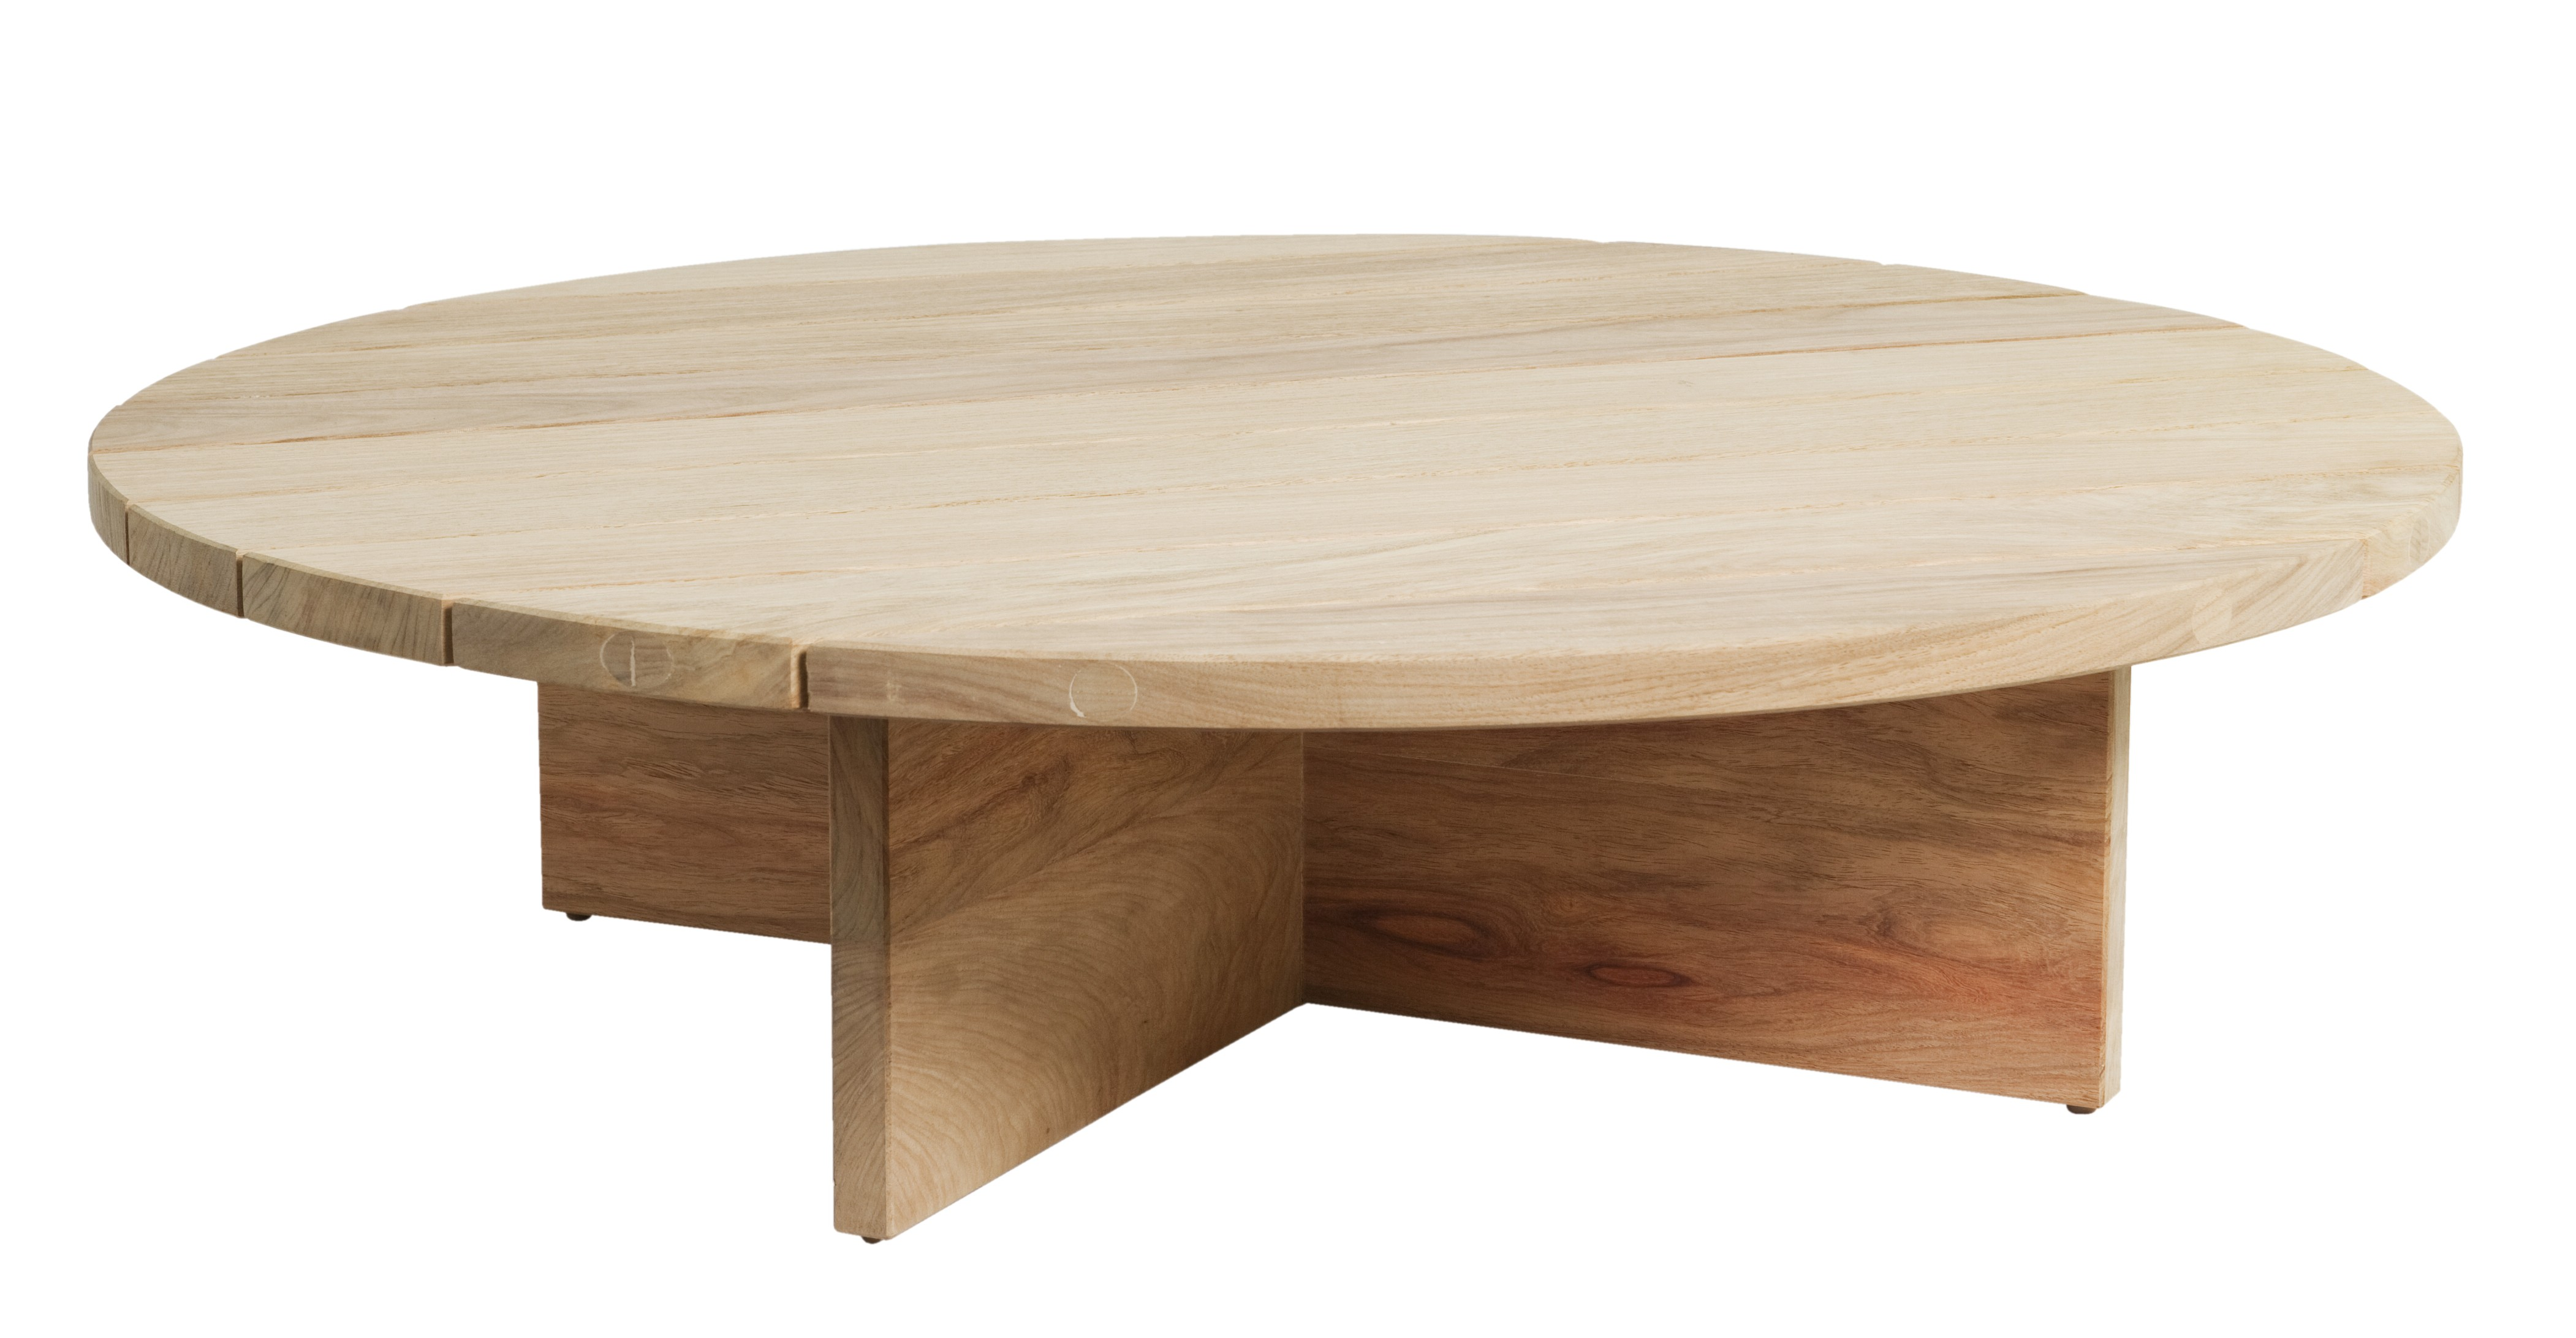 Chunky Coffee Table Round Round Timber Coffee Table Round Brown Simple Lacquered Big Coffee Table (Image 2 of 10)